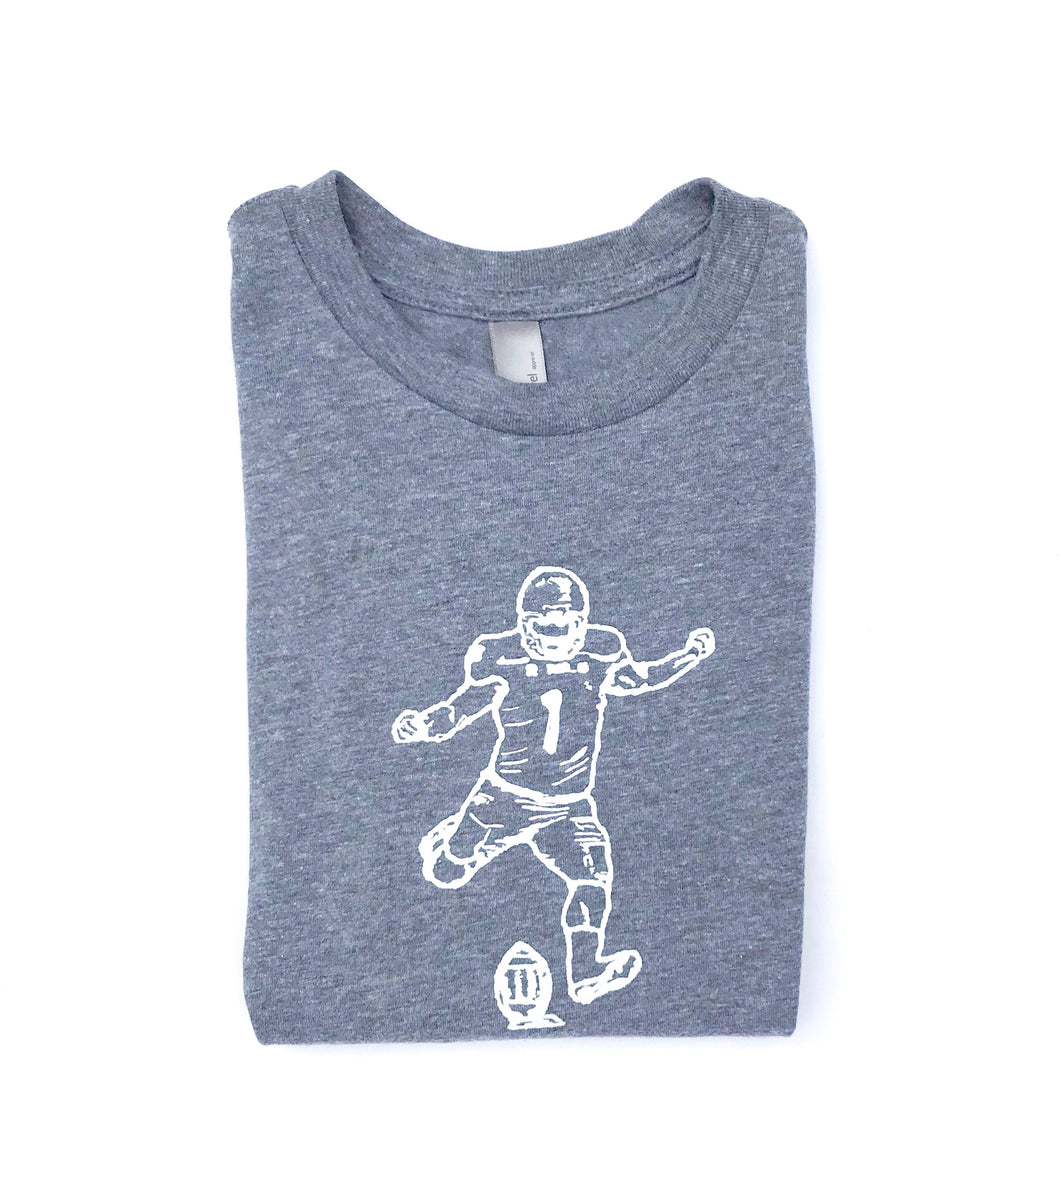 Kicker: Charcoal — bright and durable children's clothes, with love from Tennessee!